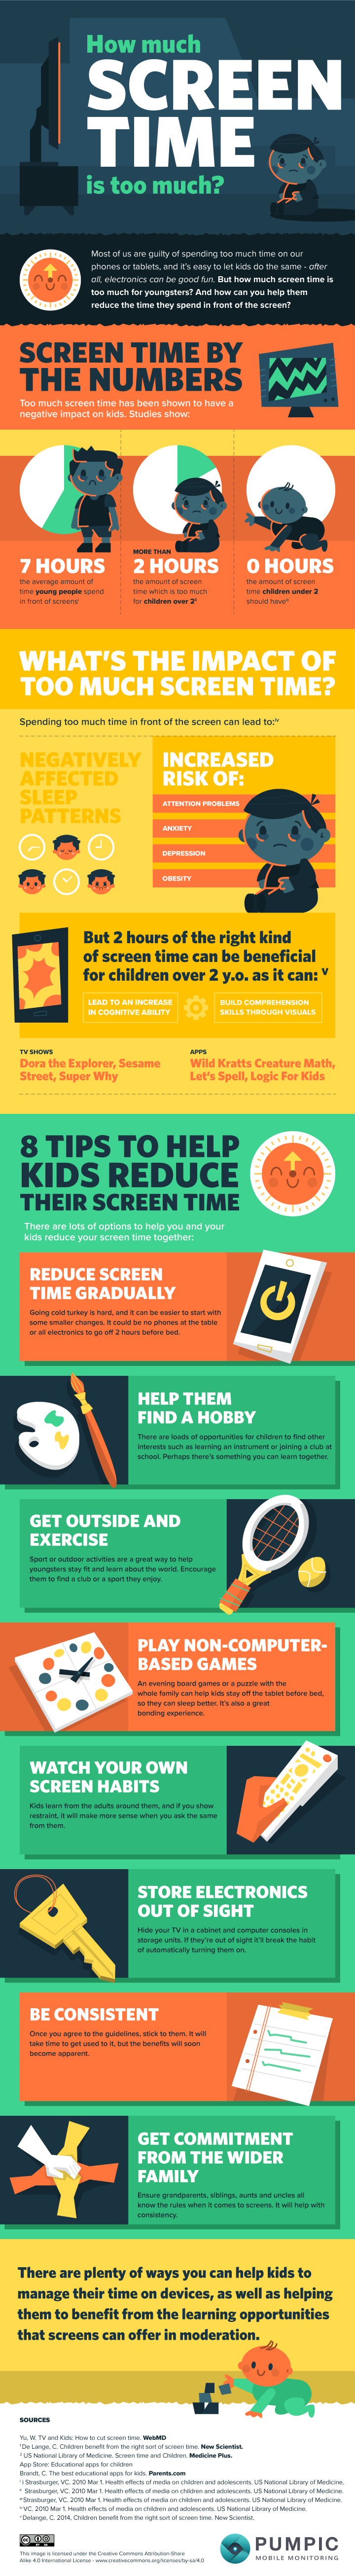 8 Must-Follow Tips to Manage Kids' Screen Time [infographic]